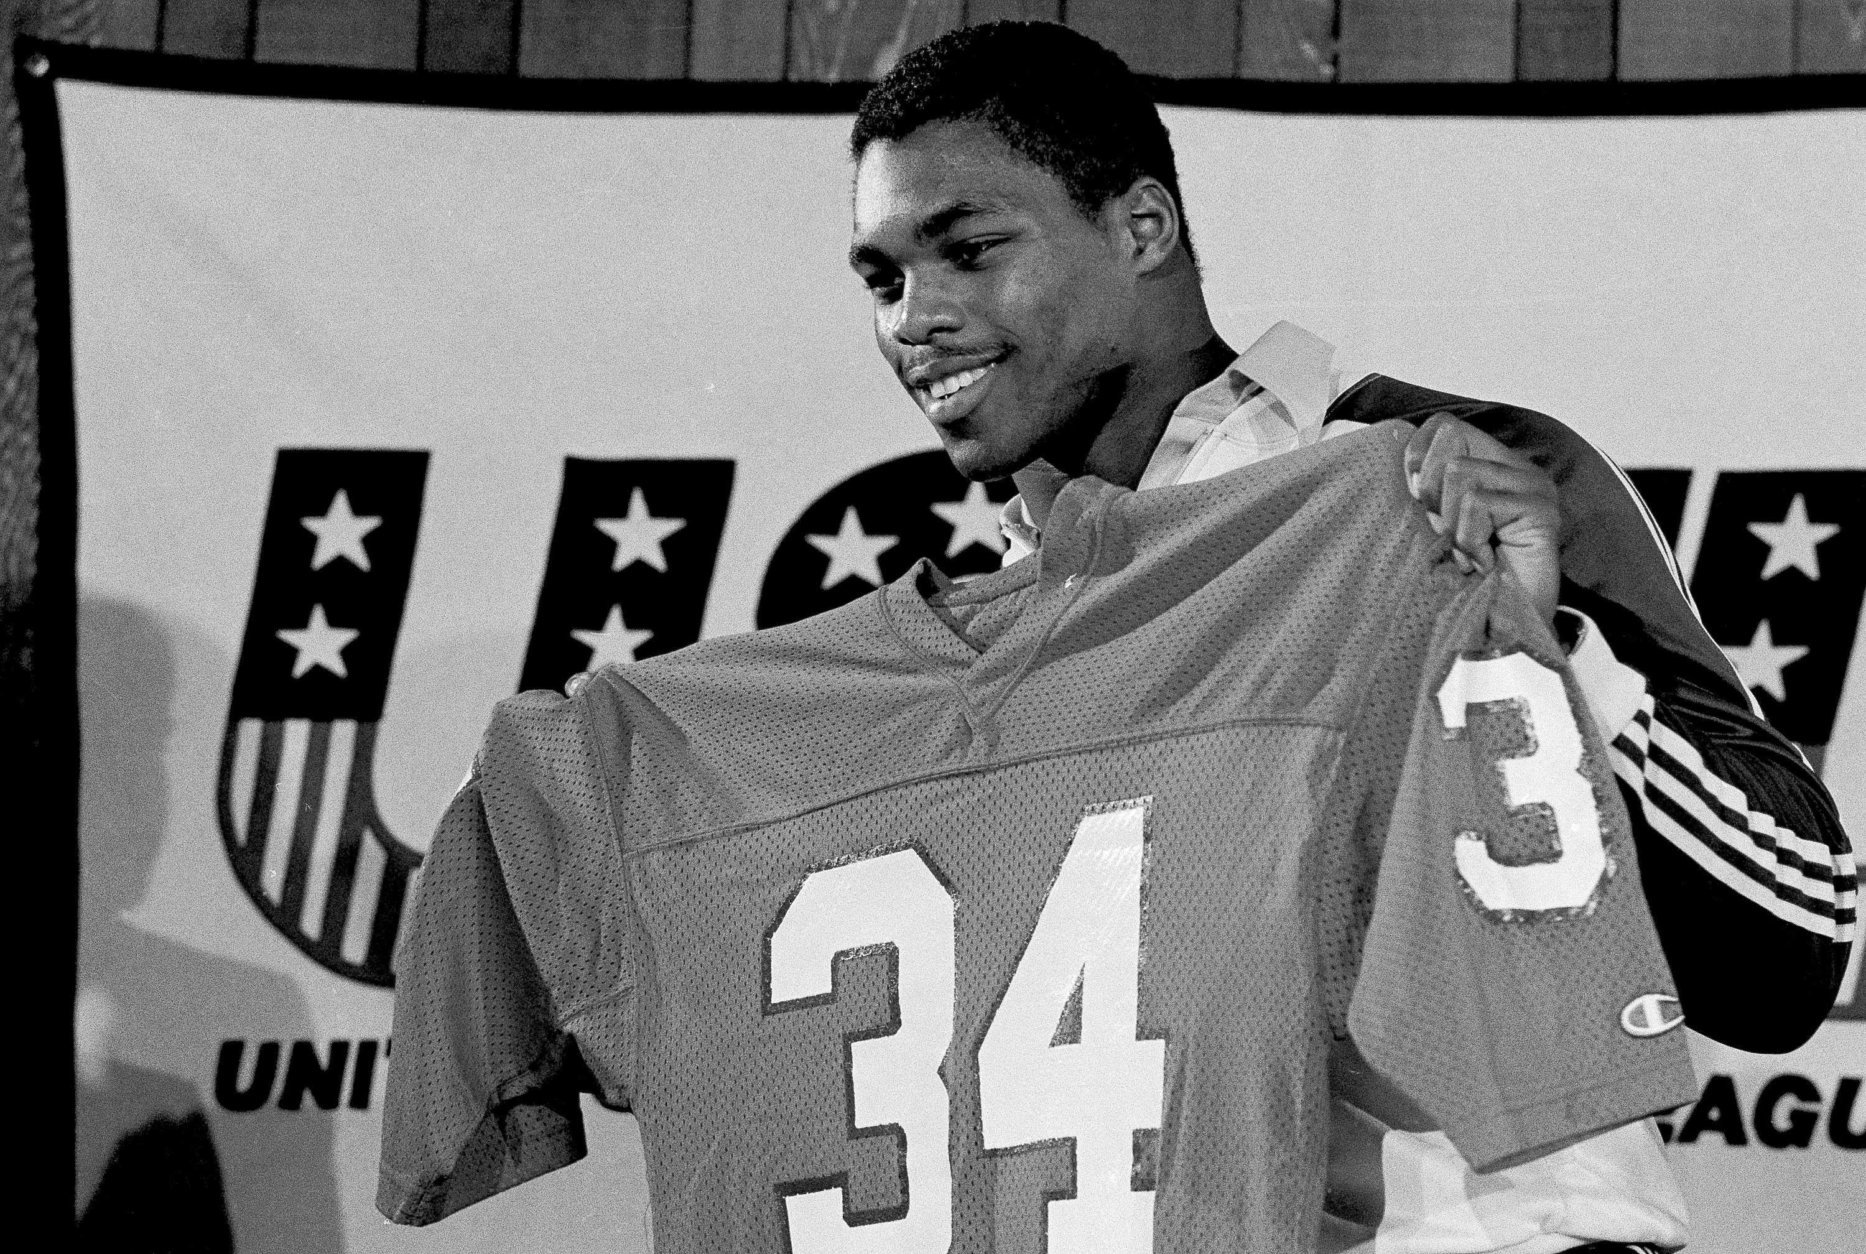 Former Georgia football player Herschel Walker holds up his new jersey at a press conference in Orlando, Fla., Feb. 26, 1983. Walker joined the New Jersey Generals of the USFL and worked out for the first time at their spring camp at the University of Central Florida. (AP Photo/Ron Lindsey)